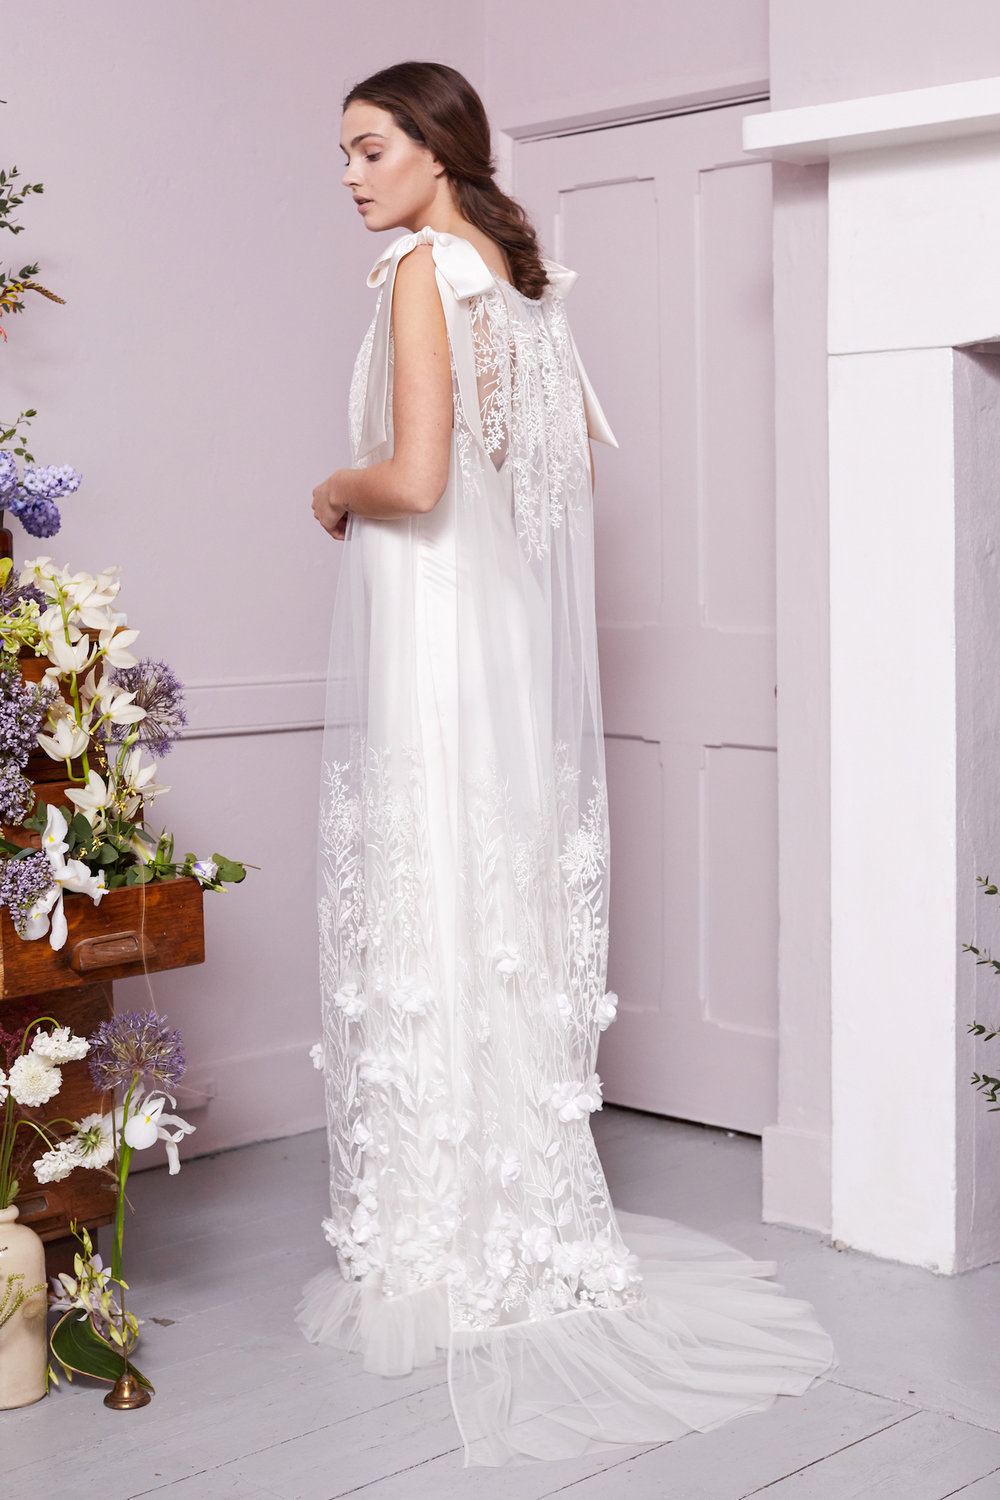 MONET TABARD & IRIS SLIP | WEDDING DRESS BY HALFPENNY LONDON